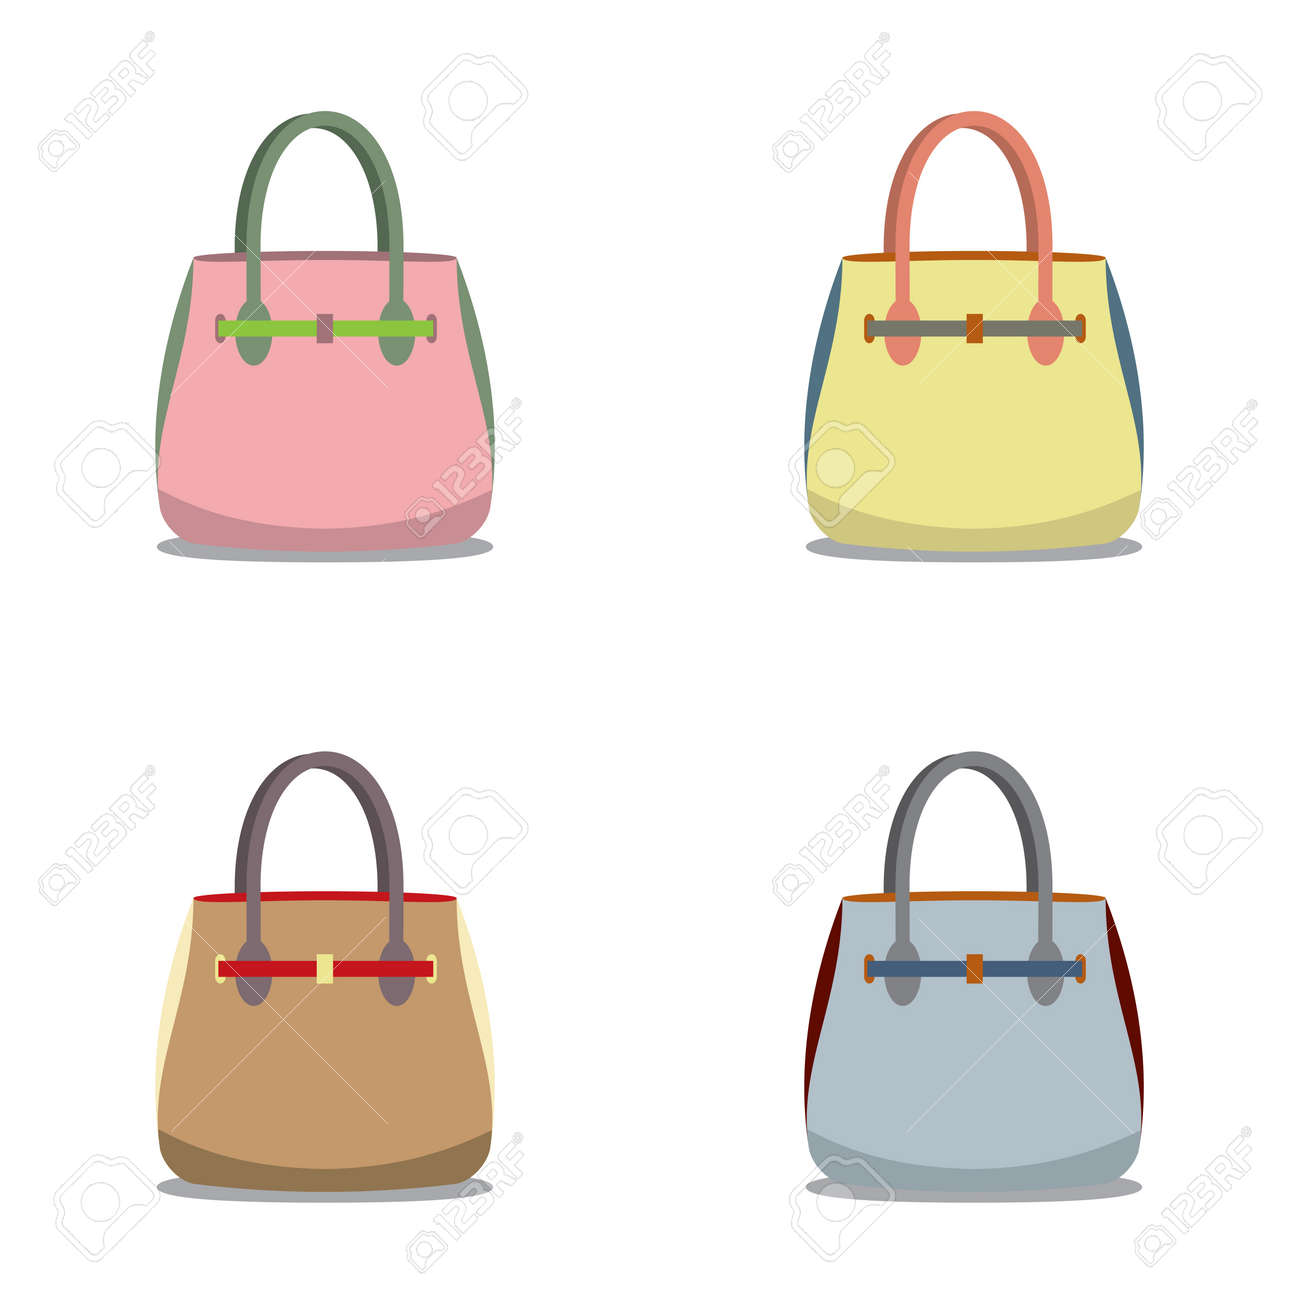 Women Bags Vector Illustration Royalty Free Cliparts, Vectors, And ... 53d1f1df51